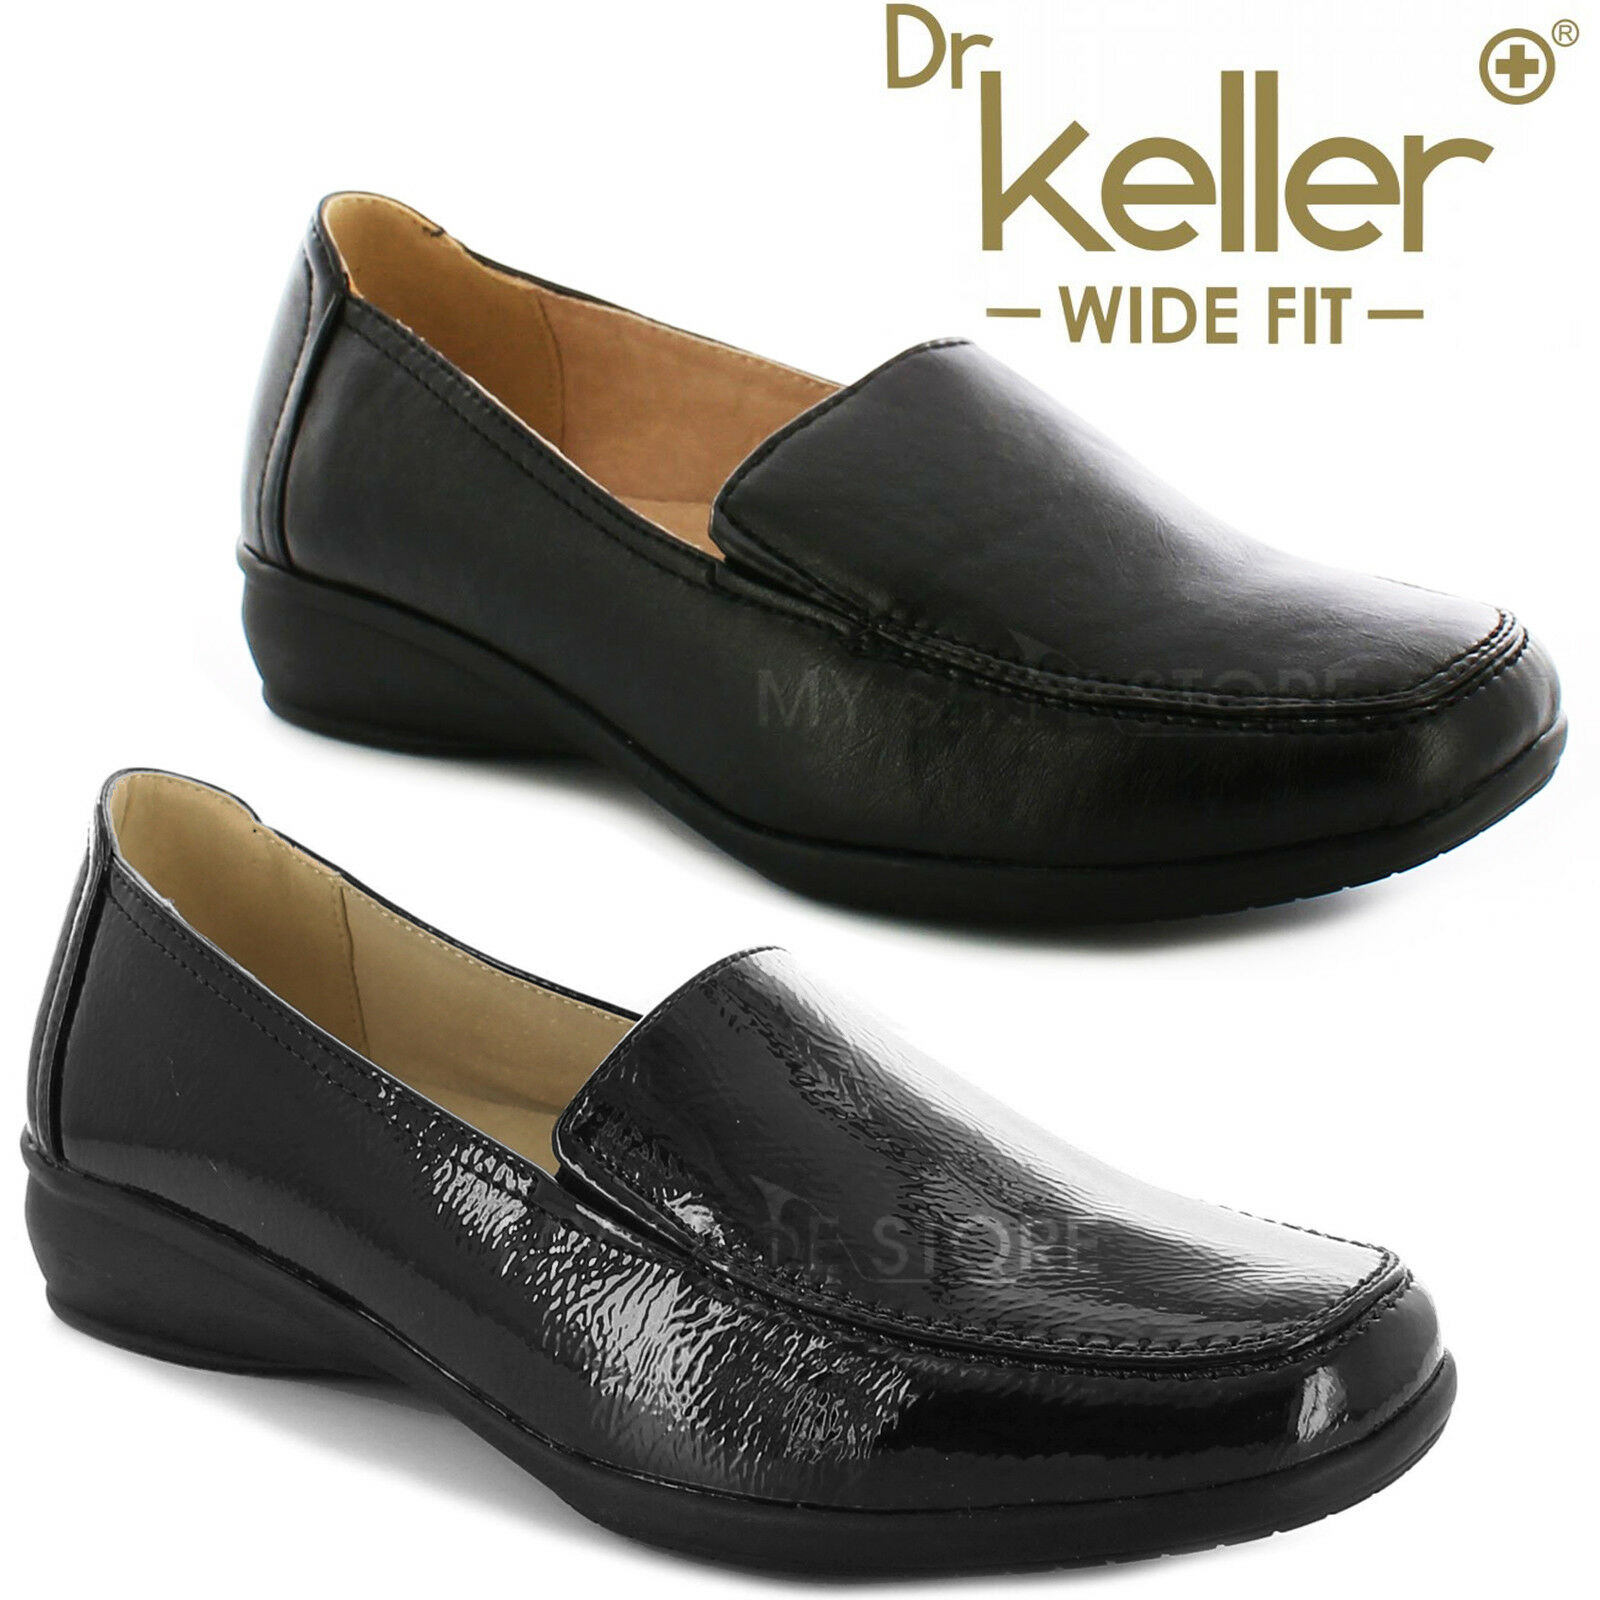 DR KELLER WOMENS WIDE FIT SHOES LADIES MOCCASIN LOAFER FLAT WEDGE COMFORT CASUAL LOAFER MOCCASIN 214852